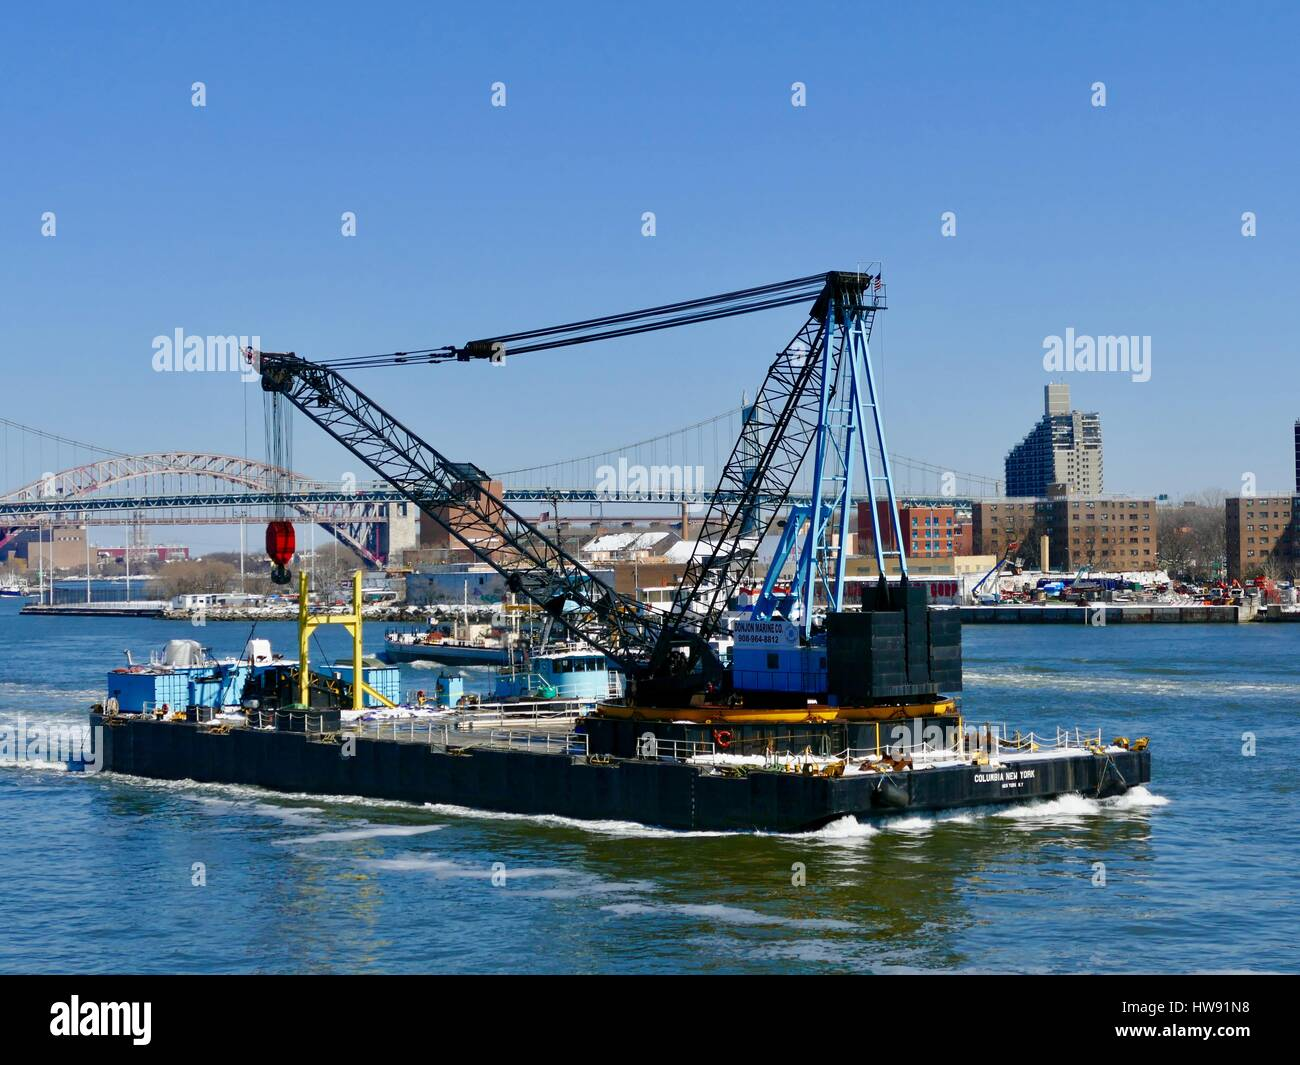 Commercial barge with crane, light blue trim, heading down the East River, New York, New York, USA - Stock Image